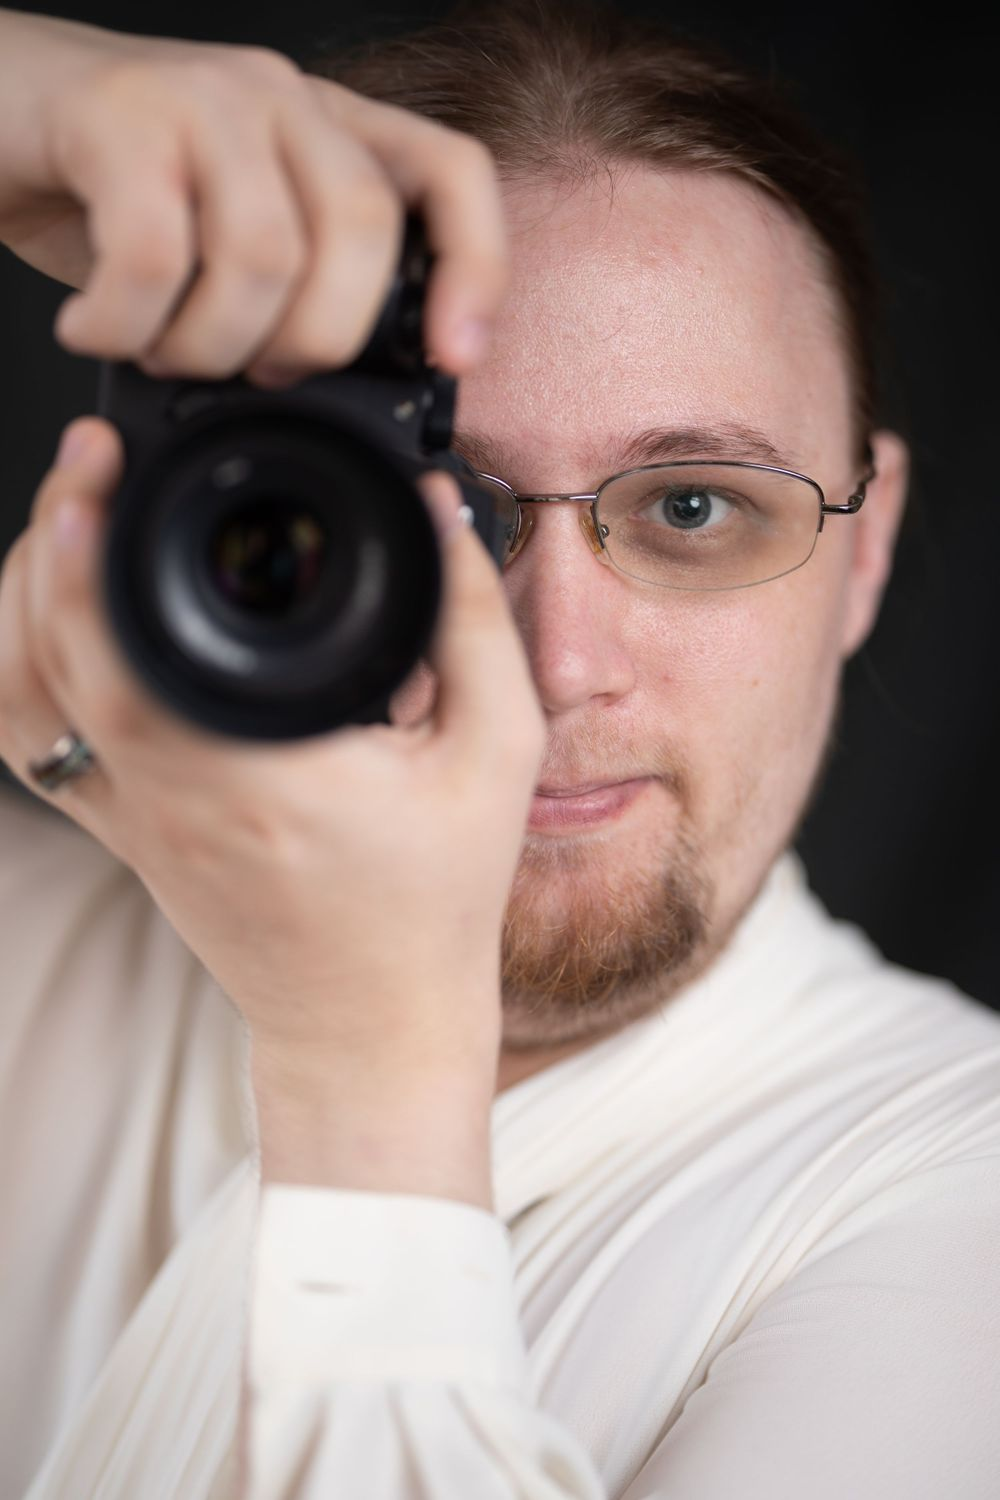 A photographer with the camera up to their eye wearing a white blouse. They have long blonde hair and a goatee